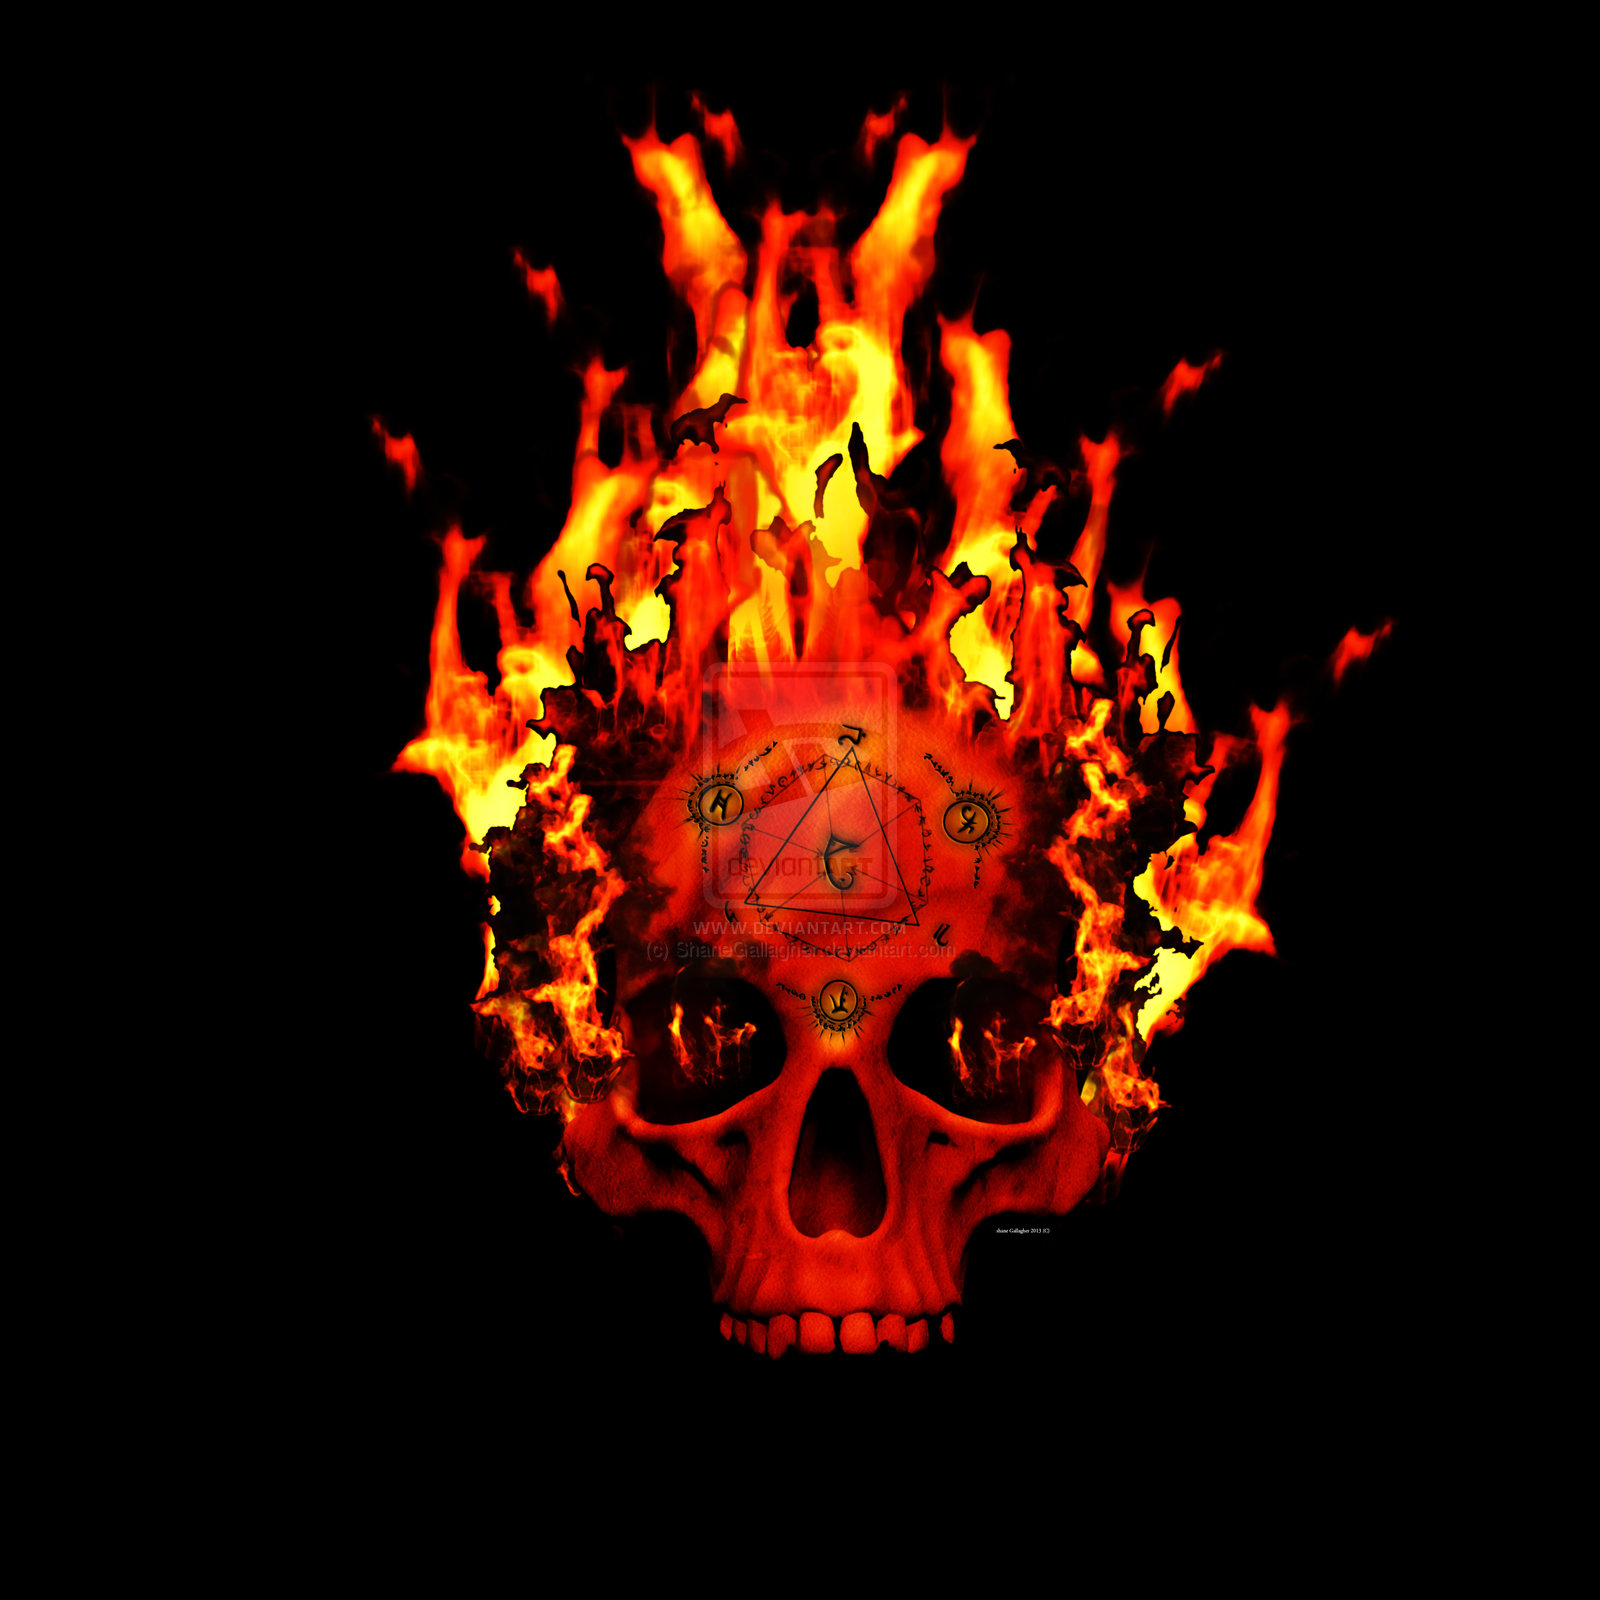 skull-flames-Google-Search-wallpaper-wp422490